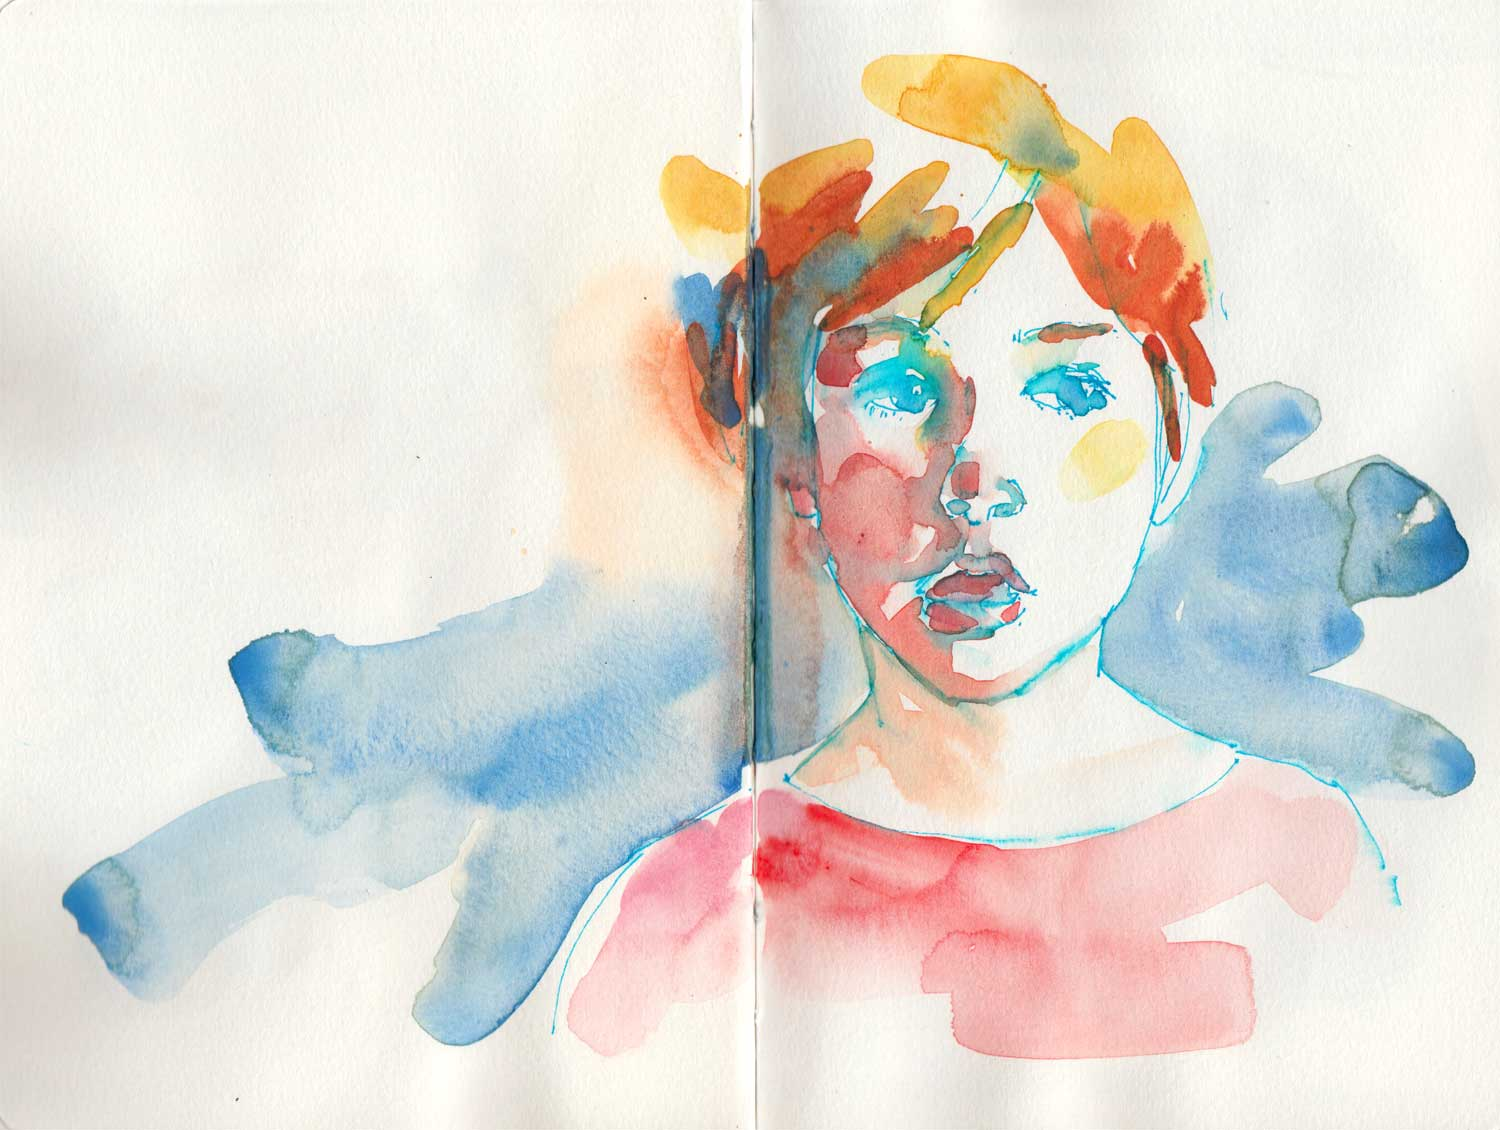 Katia. Le Pen and watercolor in a Handbook sketchbook.